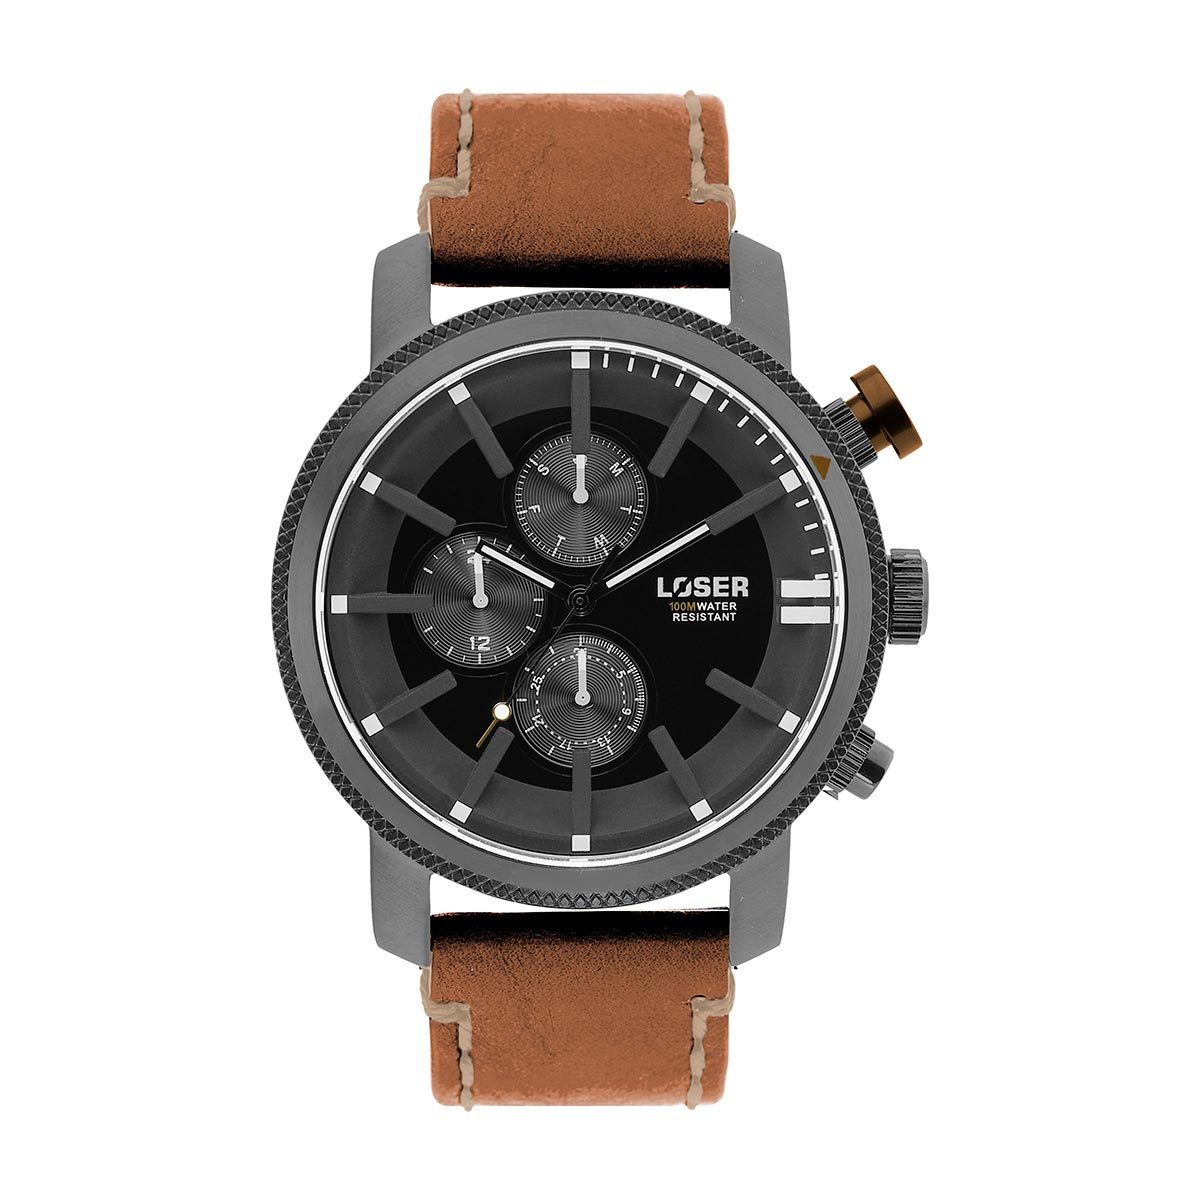 Pánské hodinky LOSER Legacy BROWN SHADE LOS-L02 - Hodinky Casio a ... aa1ded2033